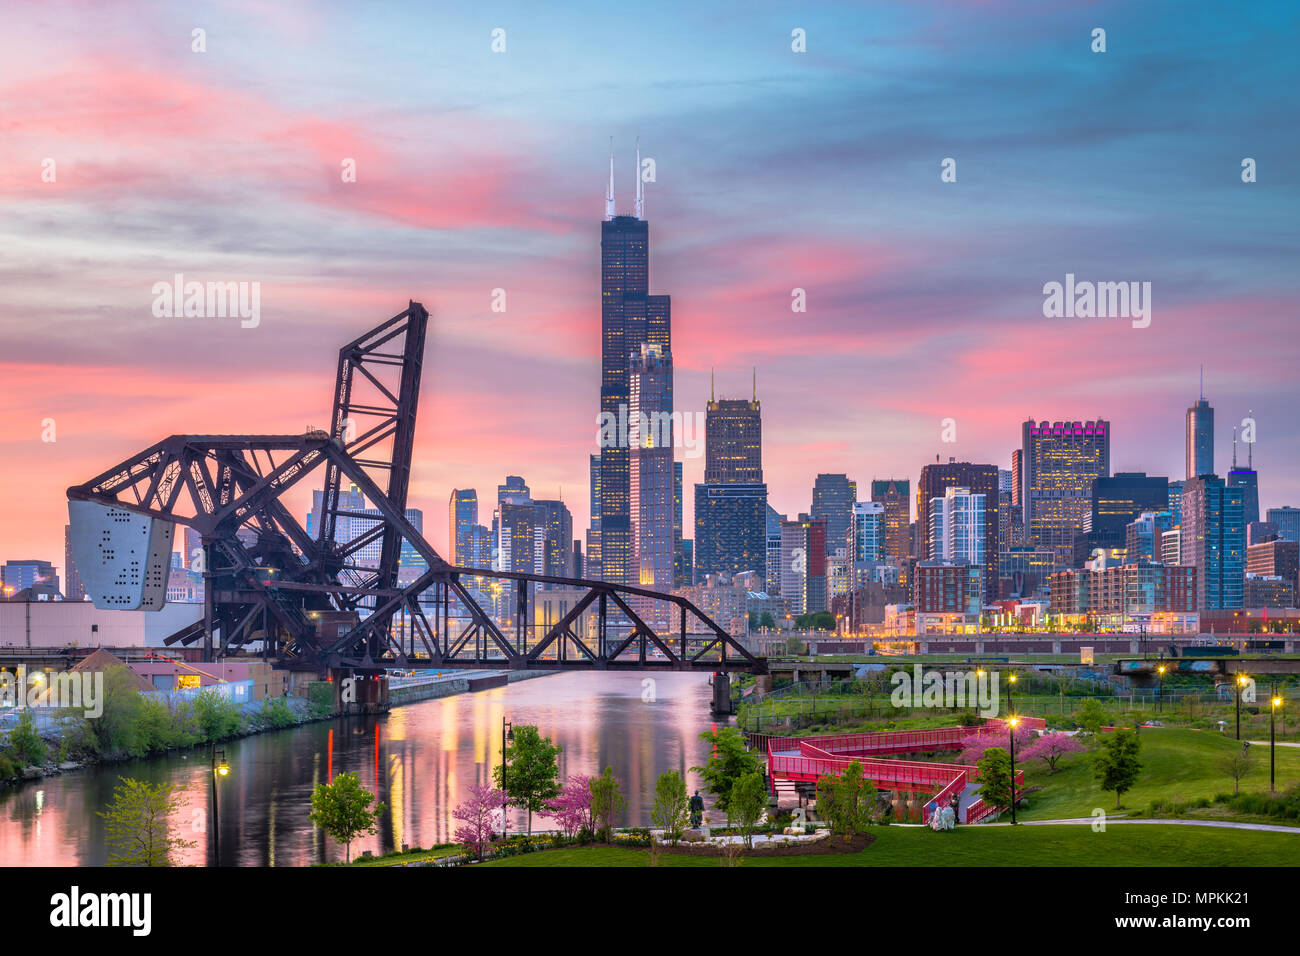 Chicago, Illinois, USA park and downtown skyline at twilight. - Stock Image